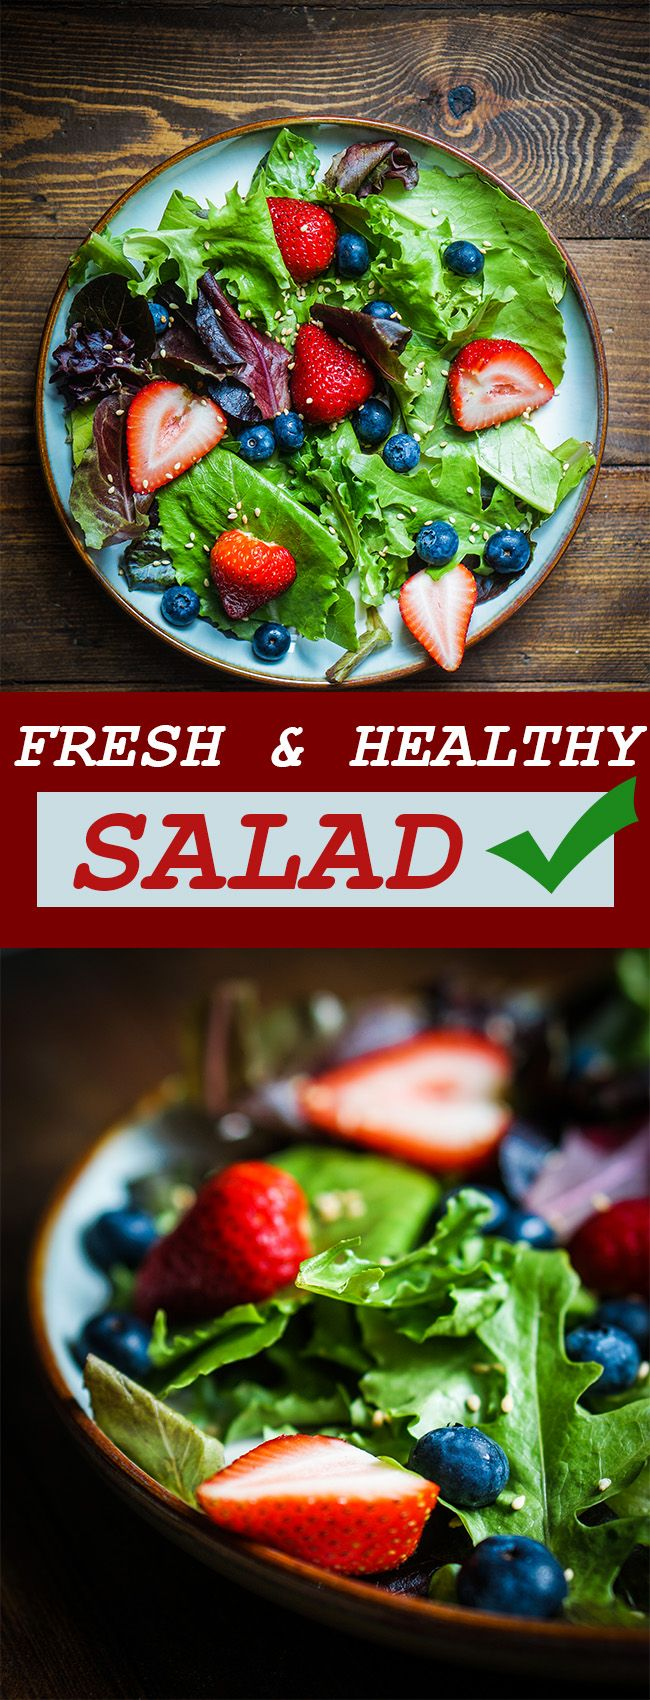 If you love strawberries, then this will be your favorite salad. Besides being sweet and tangy, it is packed with fiber which will help keep your digestive track healthy and low in cholesterol. What more